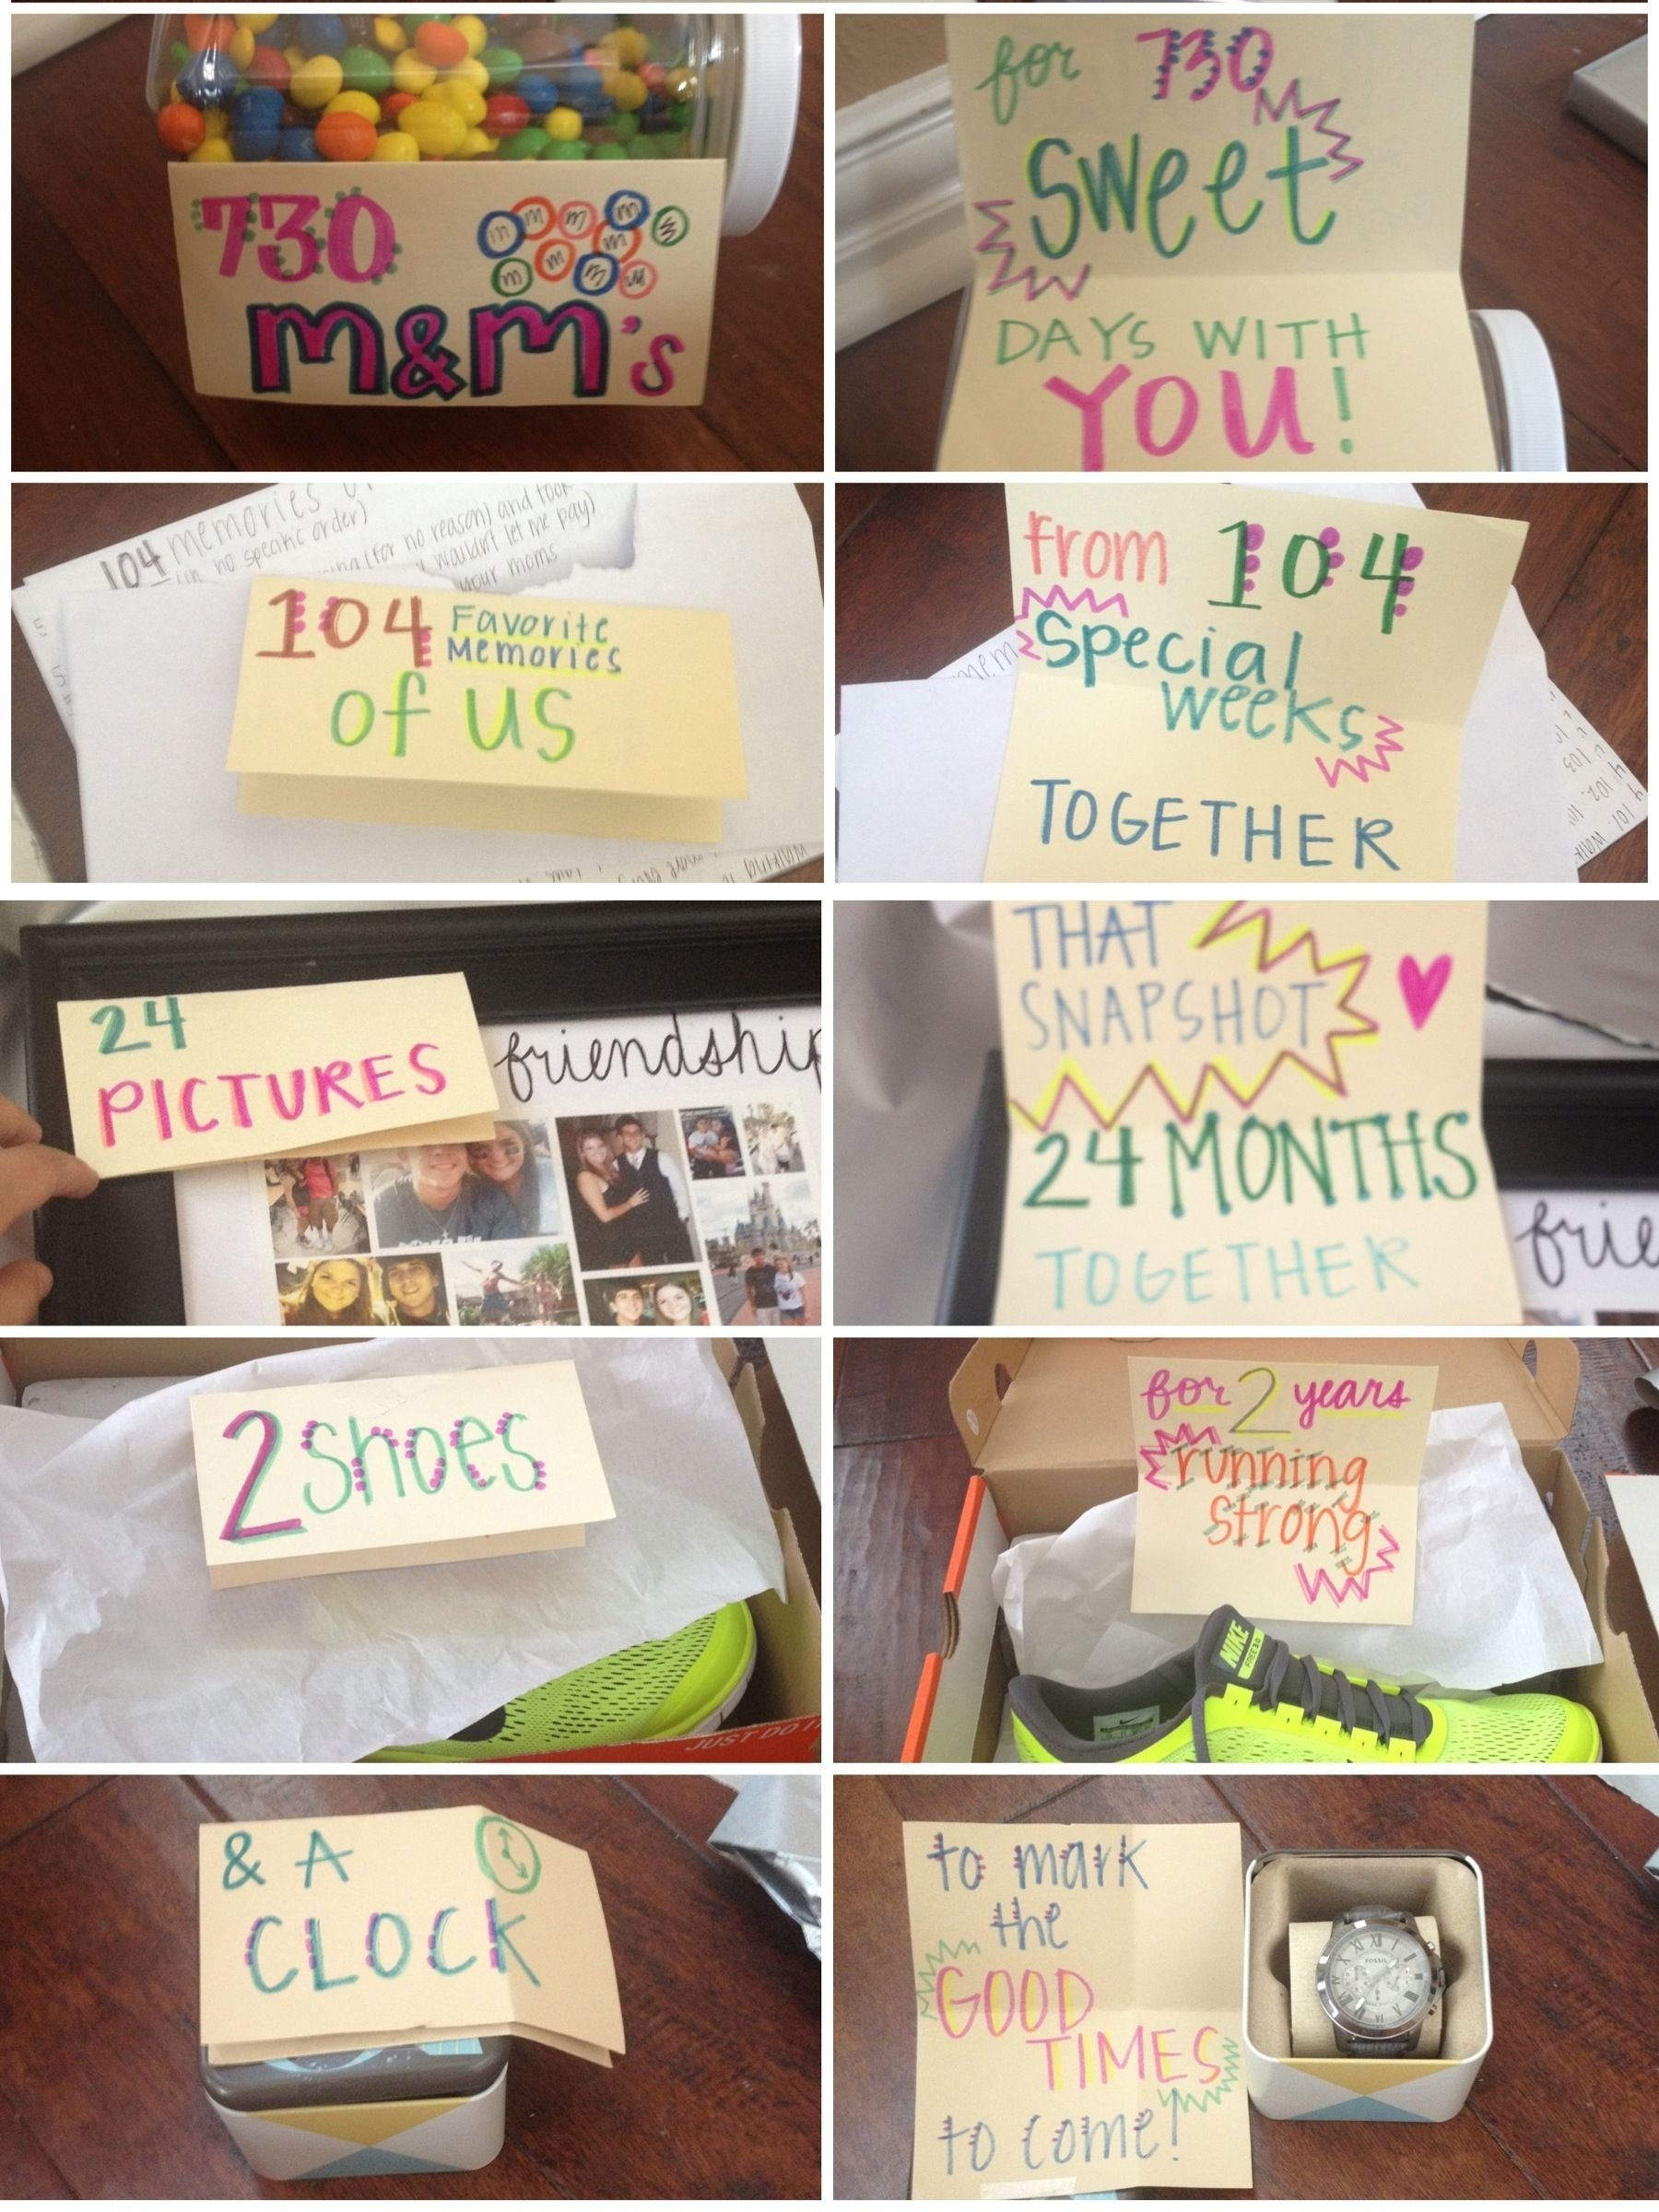 10 Spectacular 2 Year Anniversary Ideas For Girlfriend even though the two years has passed i could use this for 15 2020